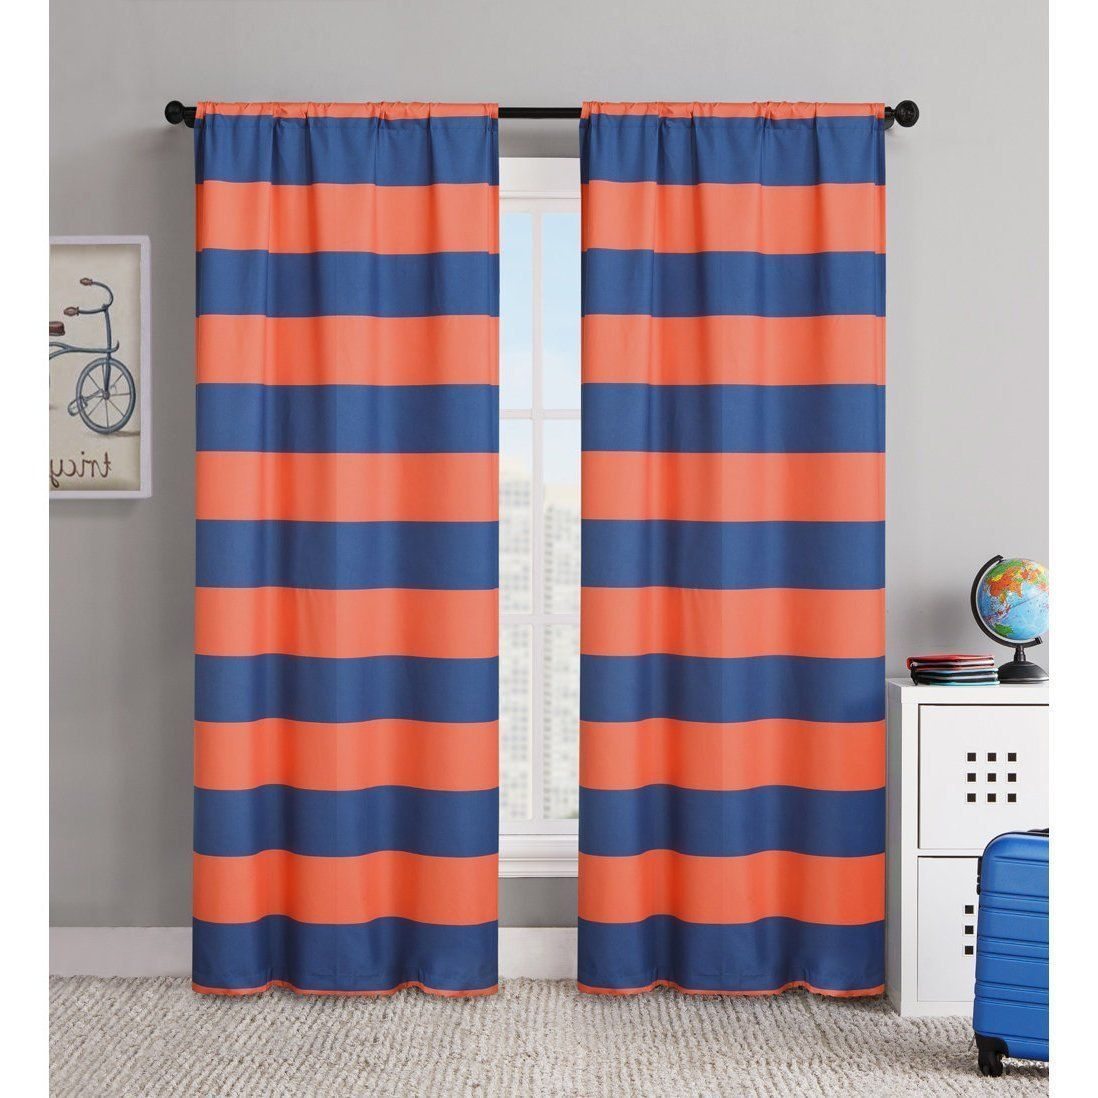 84 Inch Orange Navy Blue Rugby Stripes Curtains Pair Panel Set Tangerine  Drapes Cabana Striped Pattern